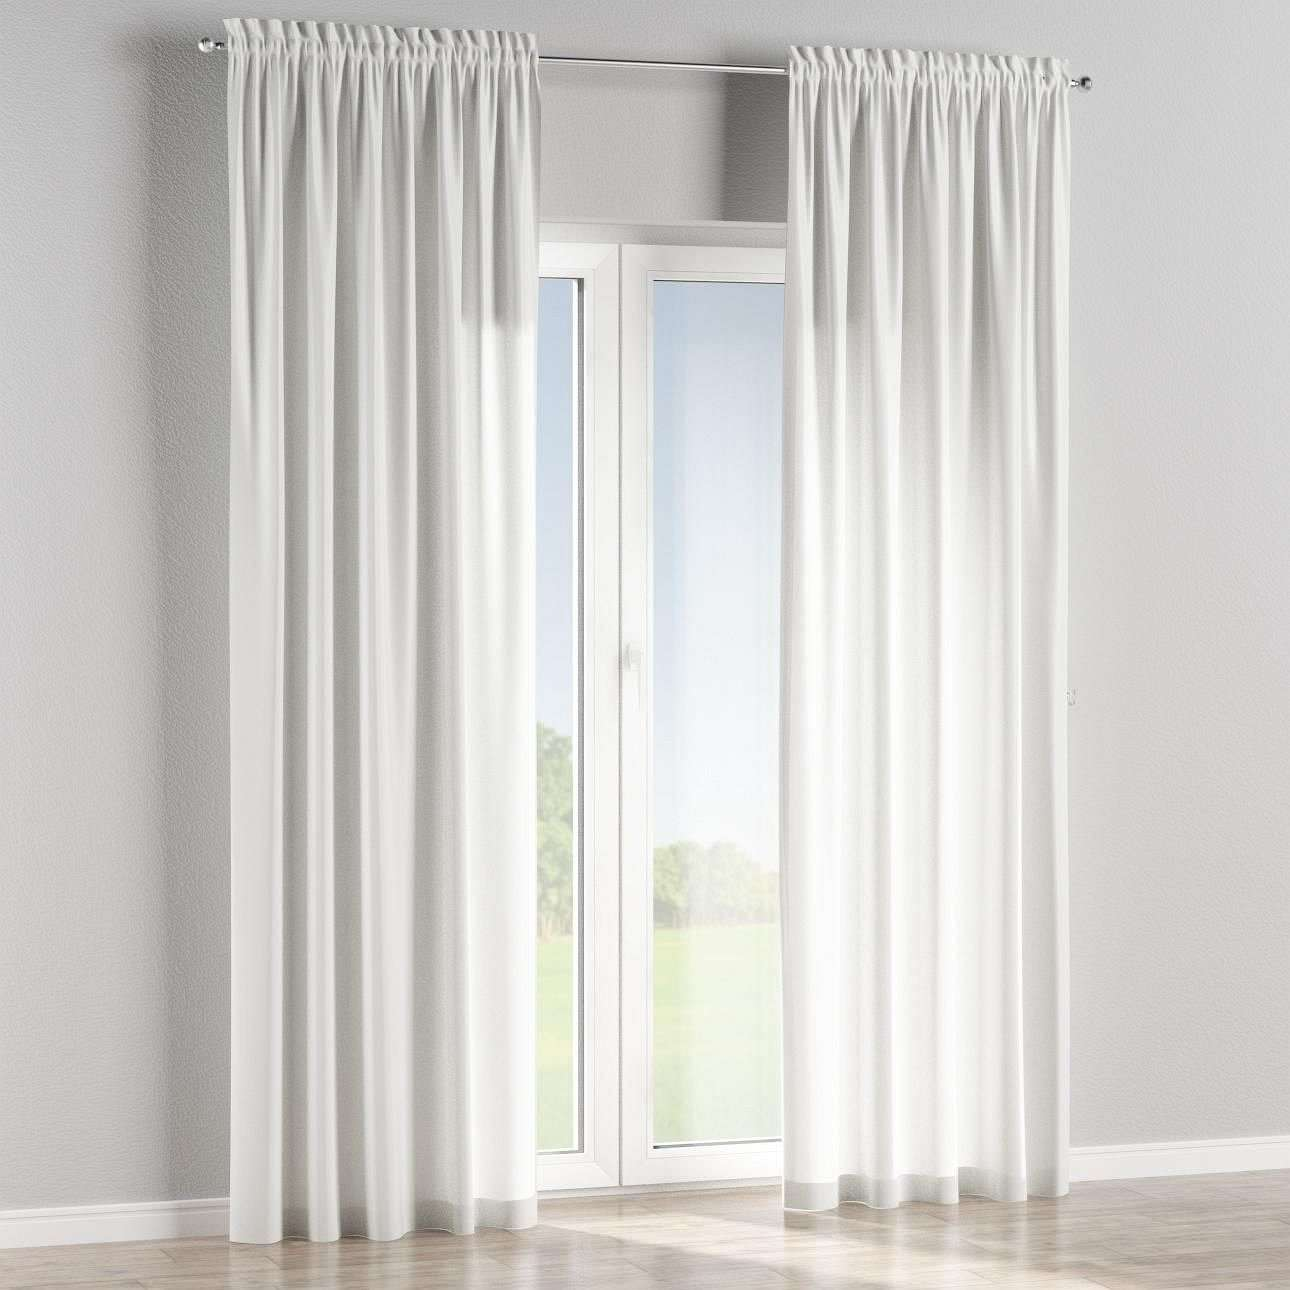 Slot and frill curtains in collection Taffeta , fabric: 103-70